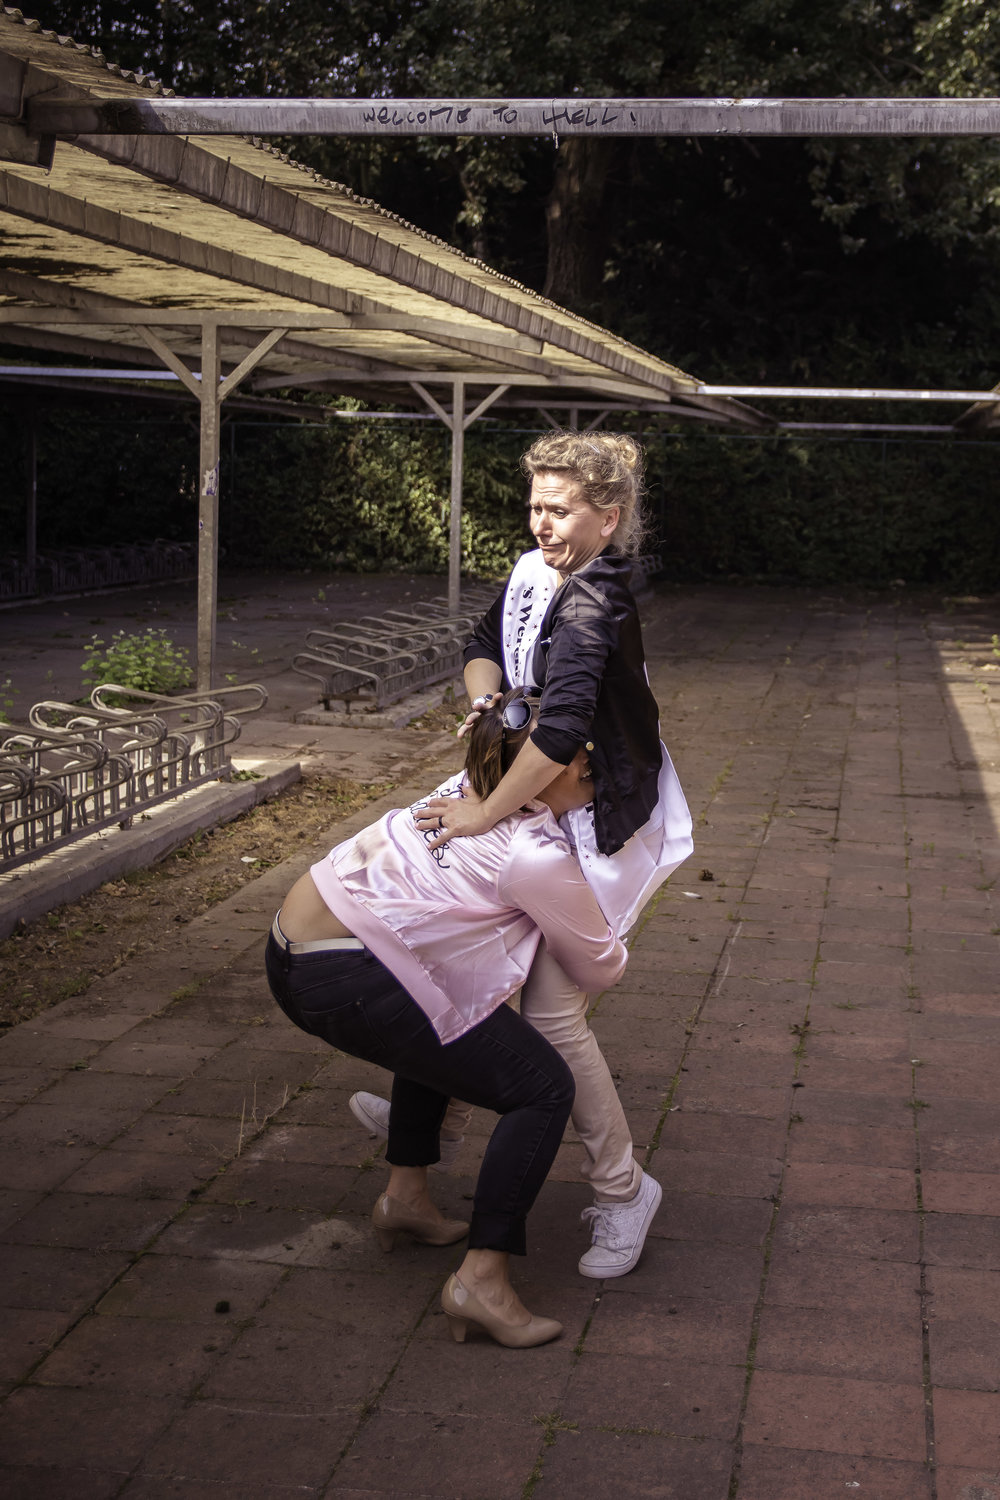 viewfinder-creativeboody-fotoshoot-vrijgezellen-eveline-thema-grease-39.jpg